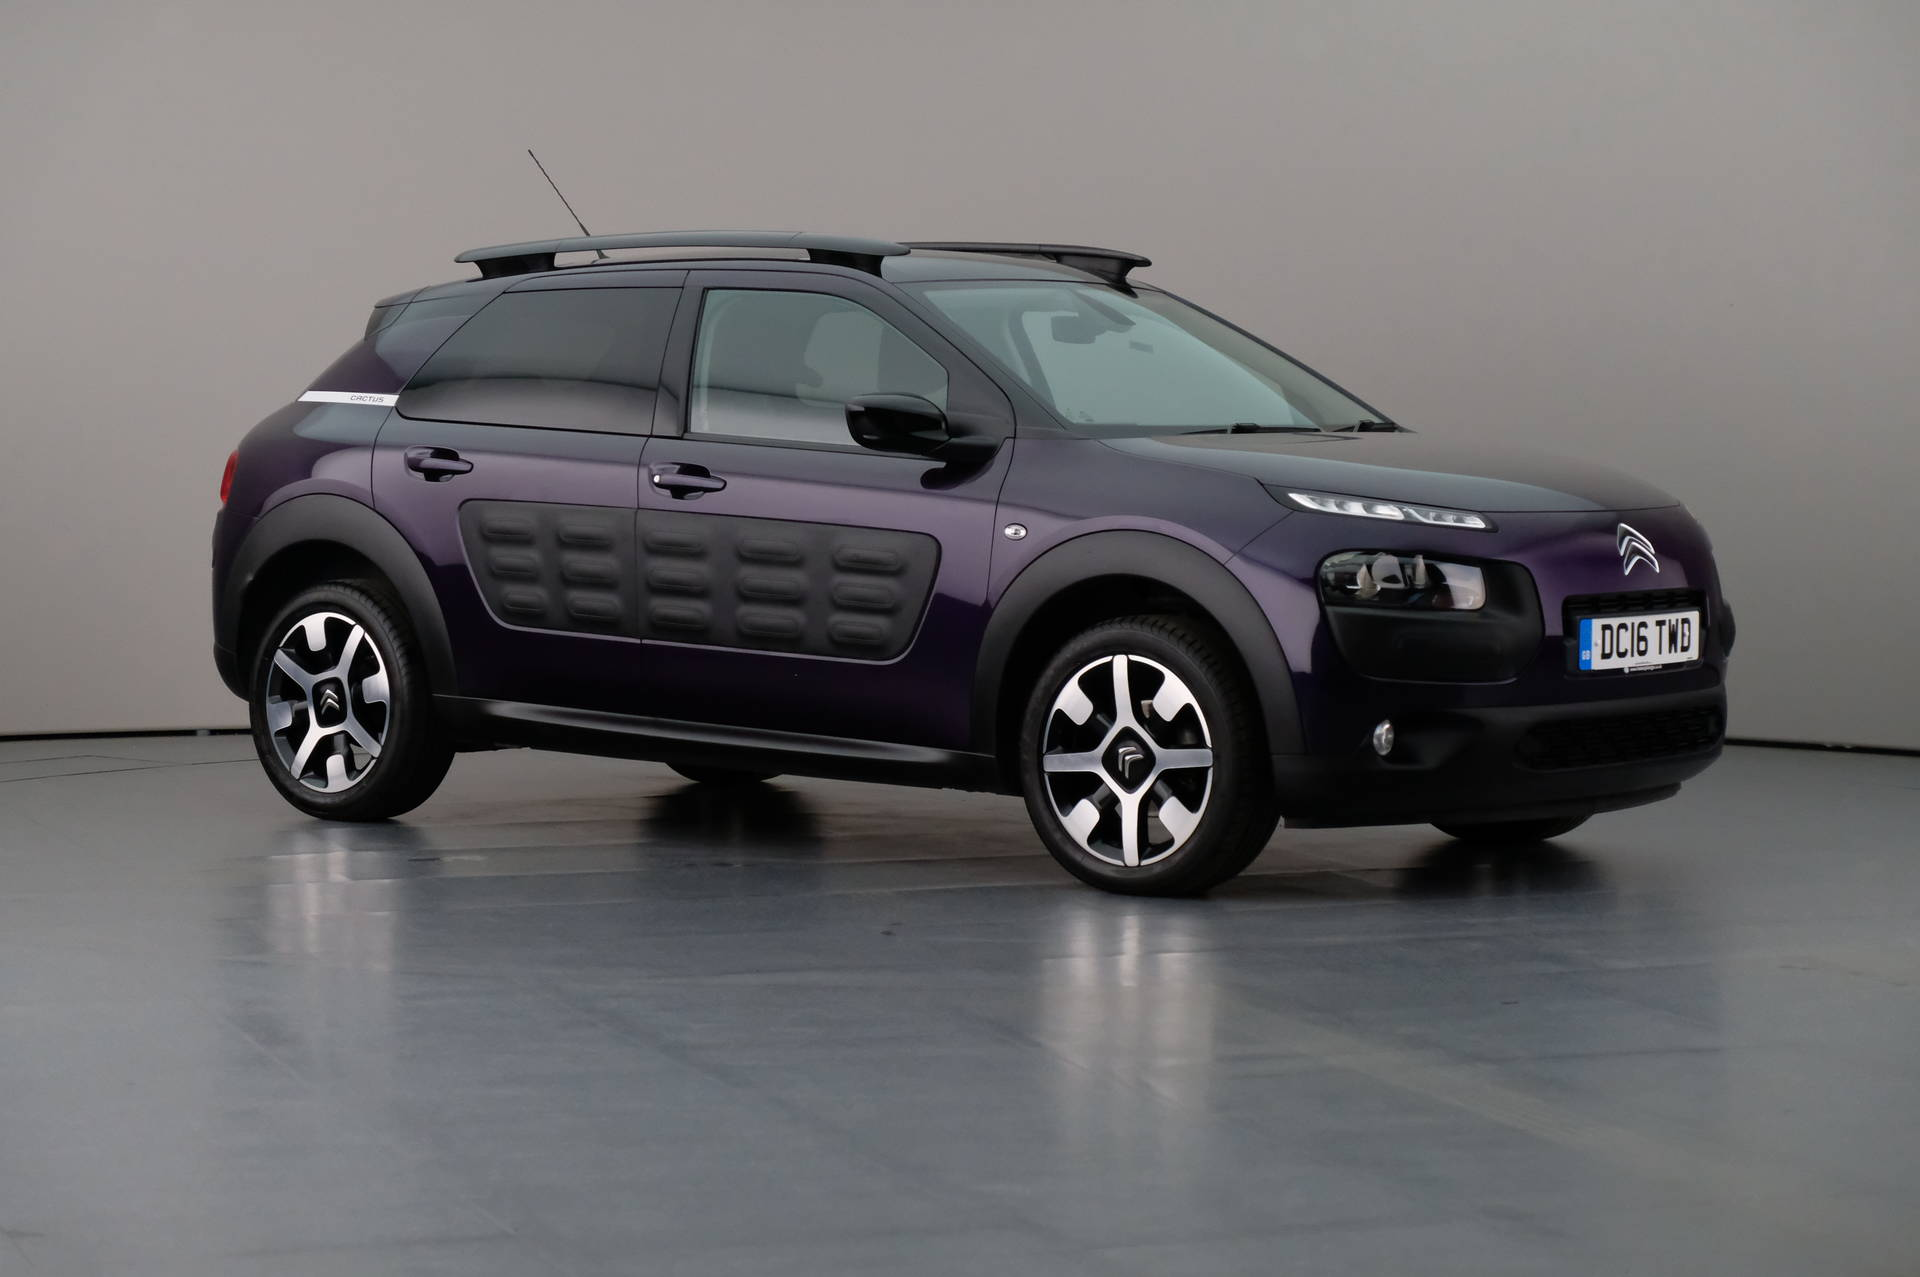 Citroën C4 Cactus 1.6 Blue HDi Flair Edition 5dr, 360-image35